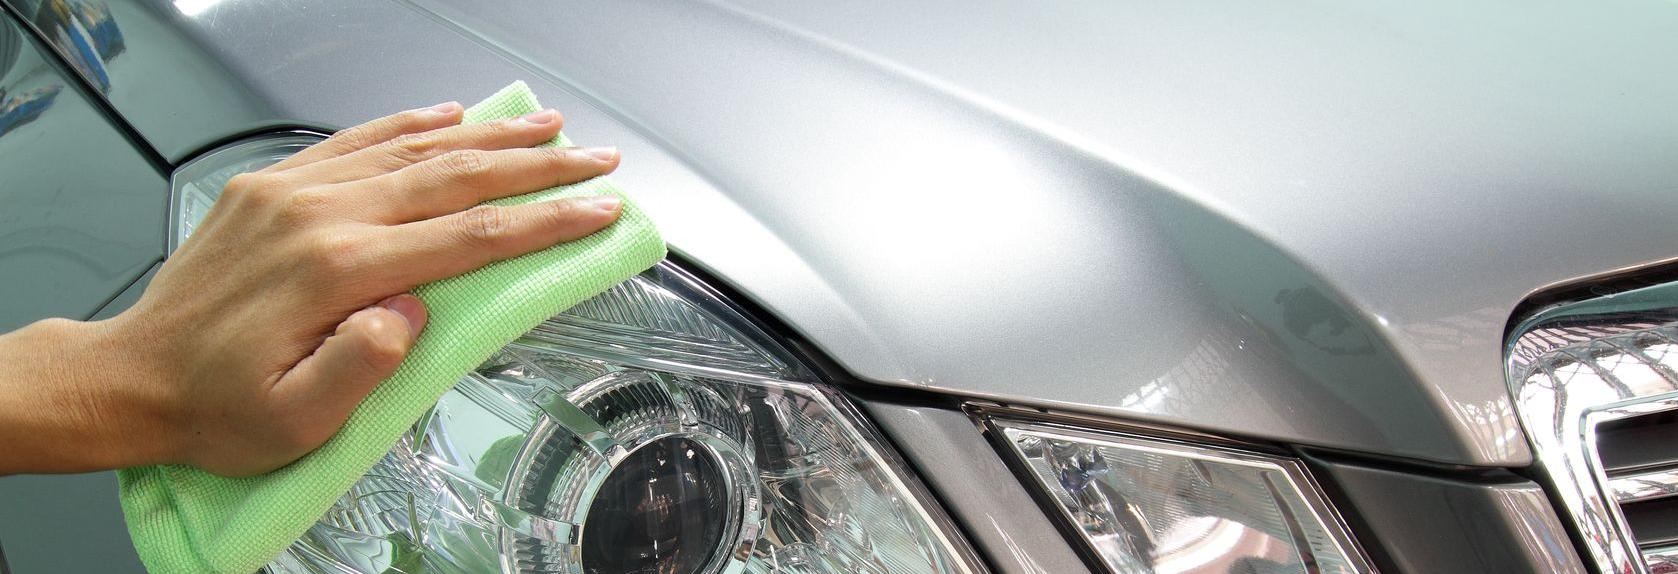 car wash hand wax window tinting auto glass